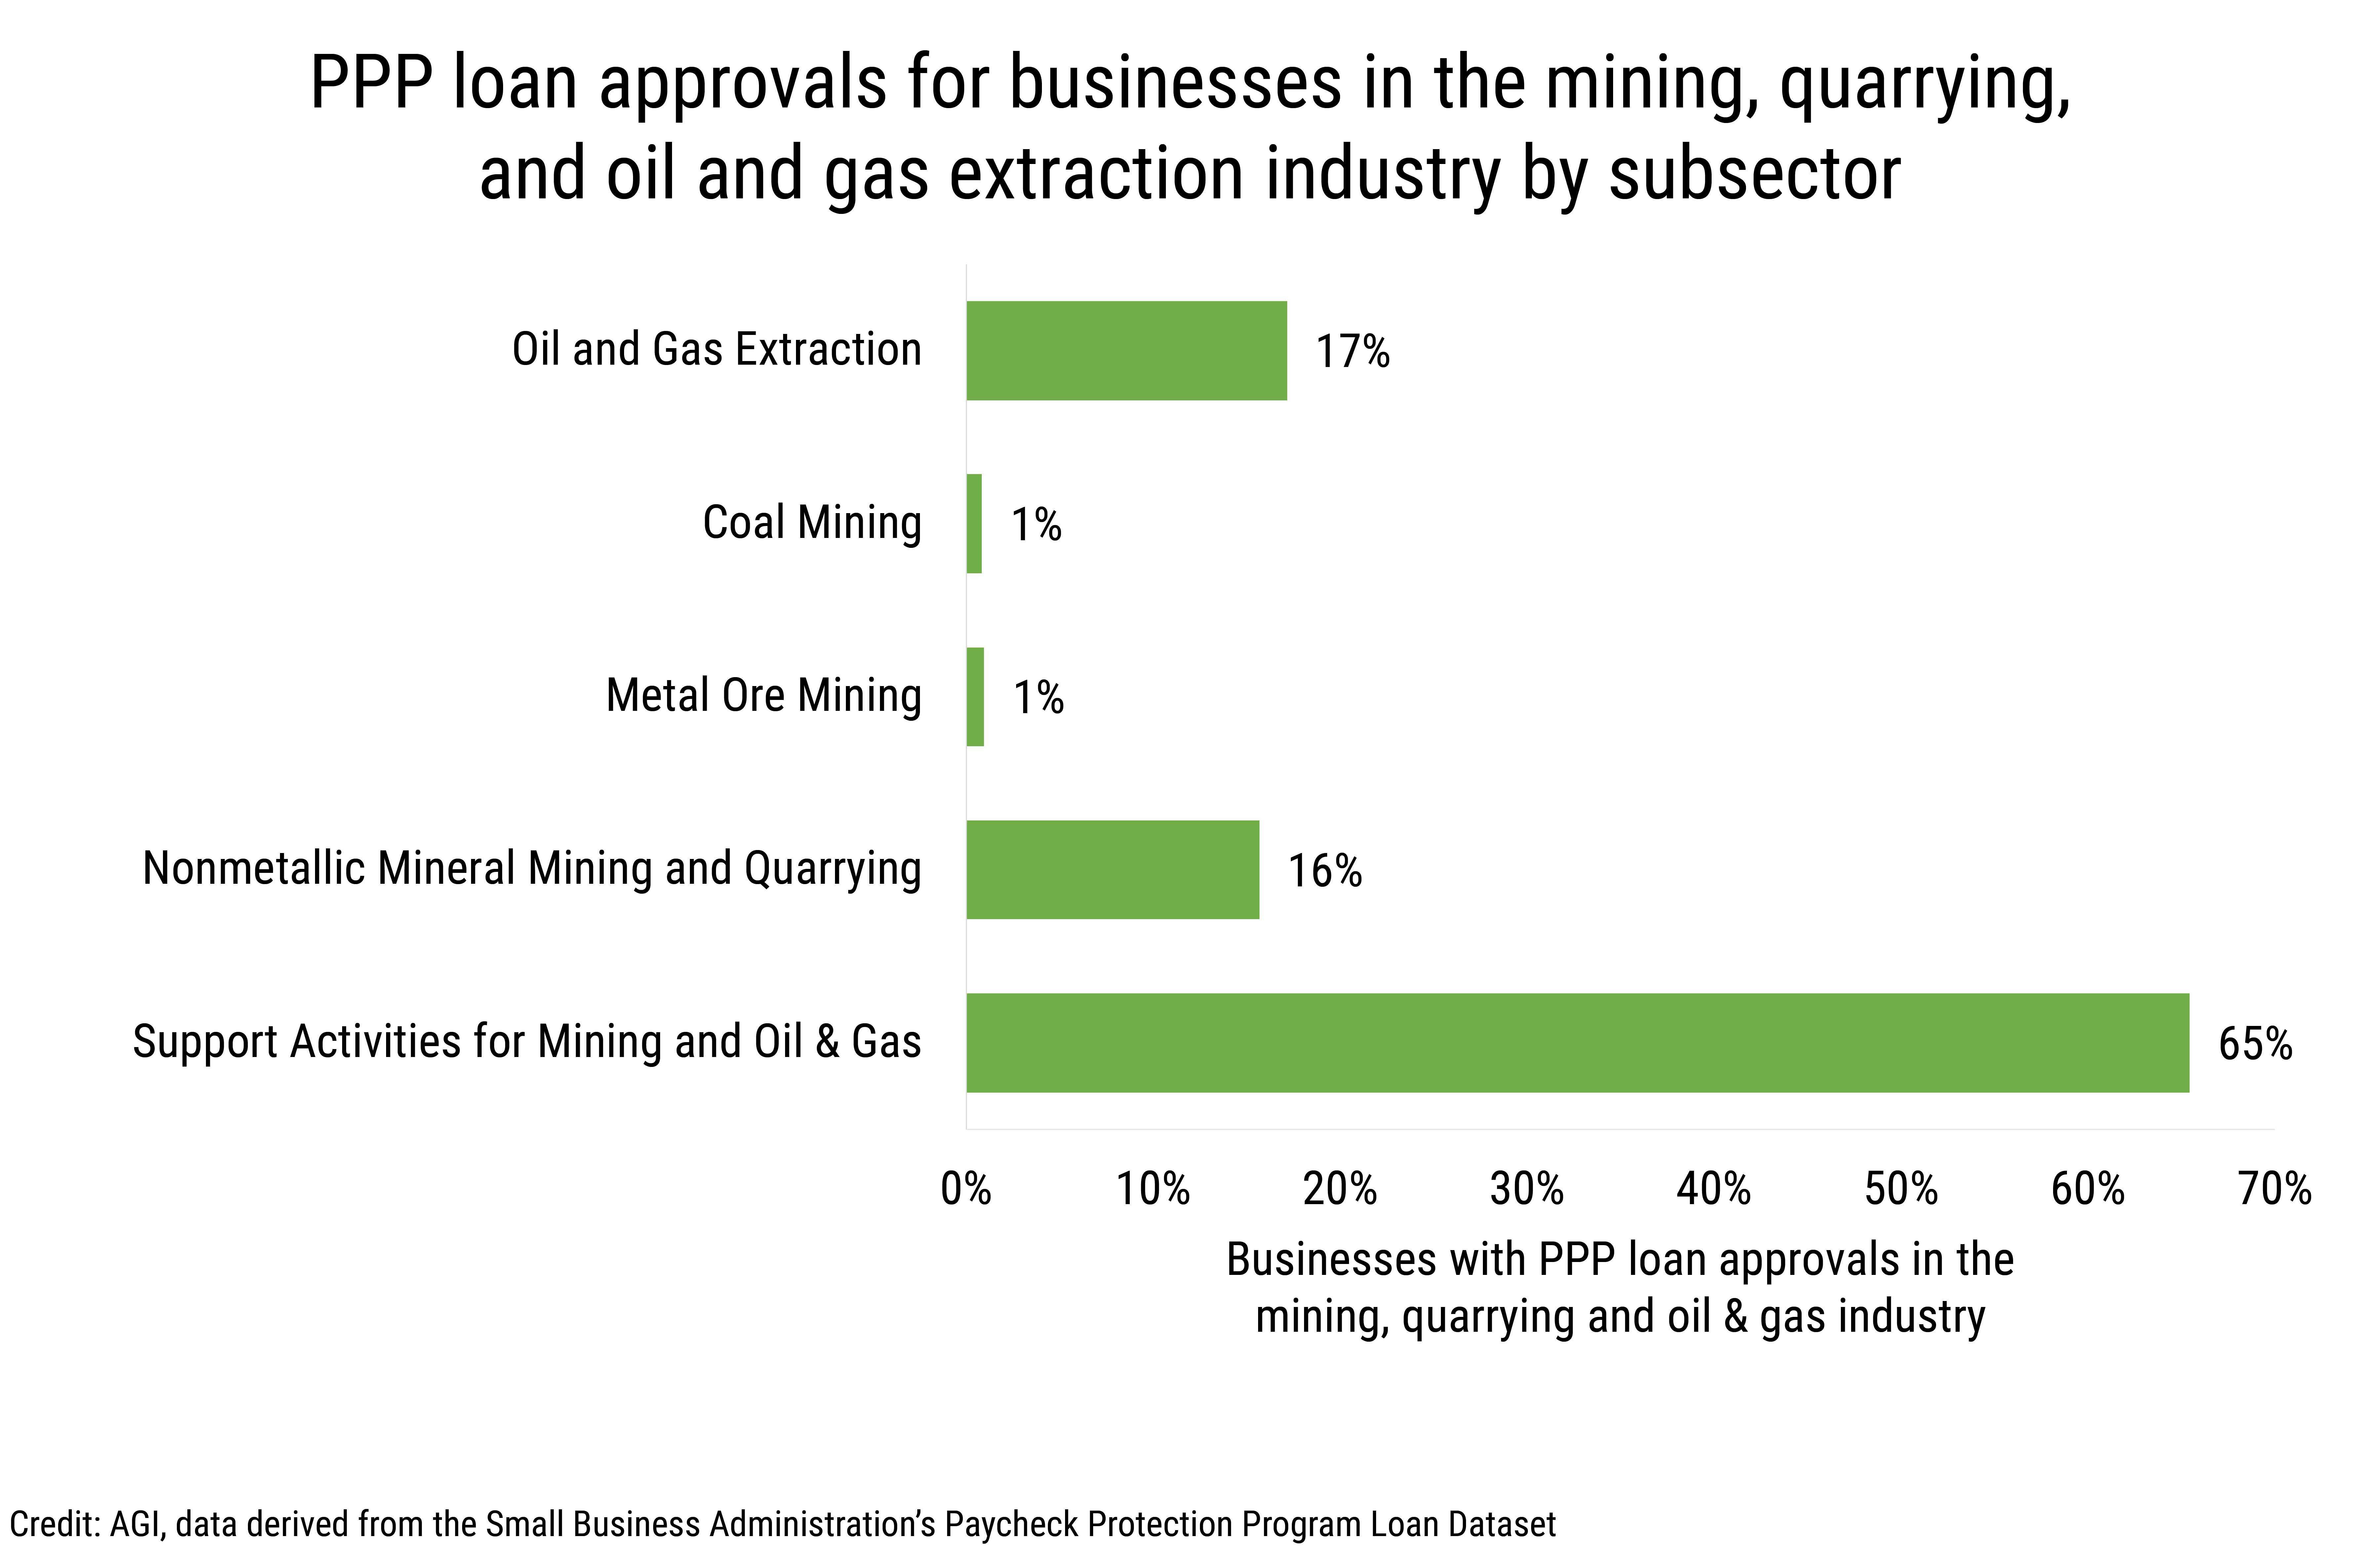 DB_2020-017 chart 01: PPP loan approvals for businesses in the mining, quarrying, and oil and gas extraction industry by subsector. (credit: AGI, data derived from the Small Business Administration's Paycheck Protection Program Loan Dataset)